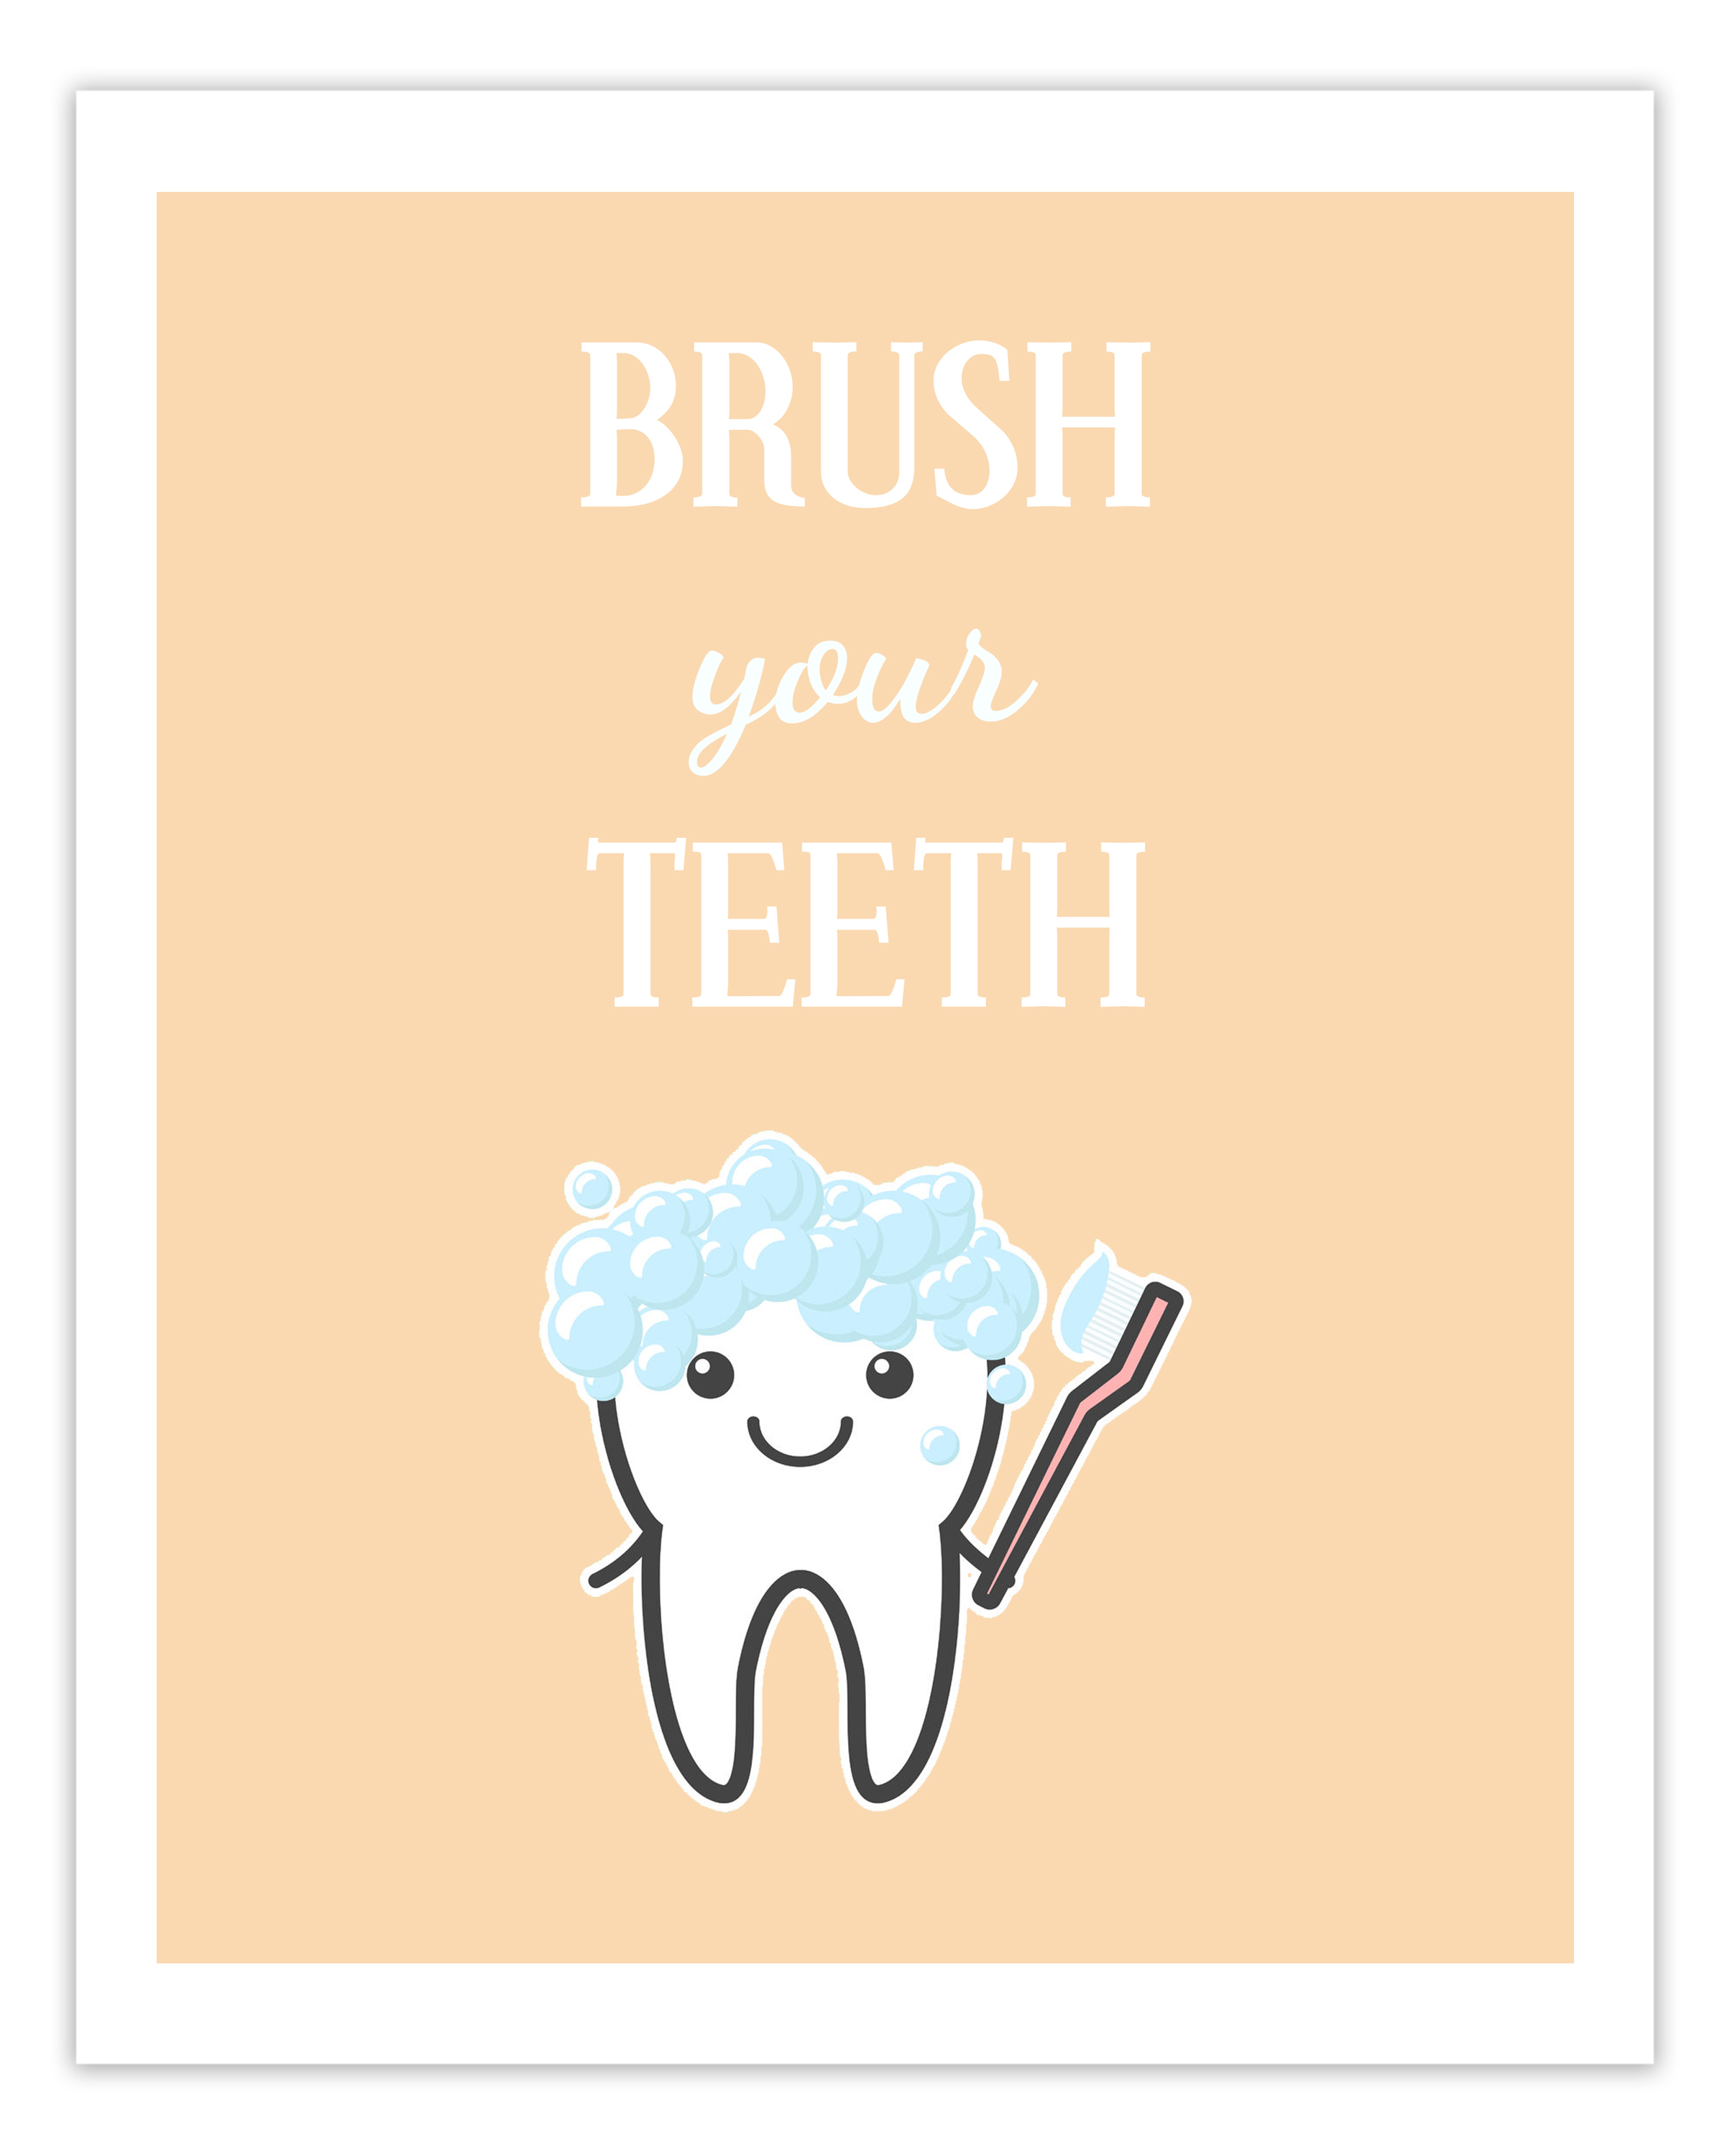 Communication on this topic: Art Of Brushing Your Teeth, art-of-brushing-your-teeth/